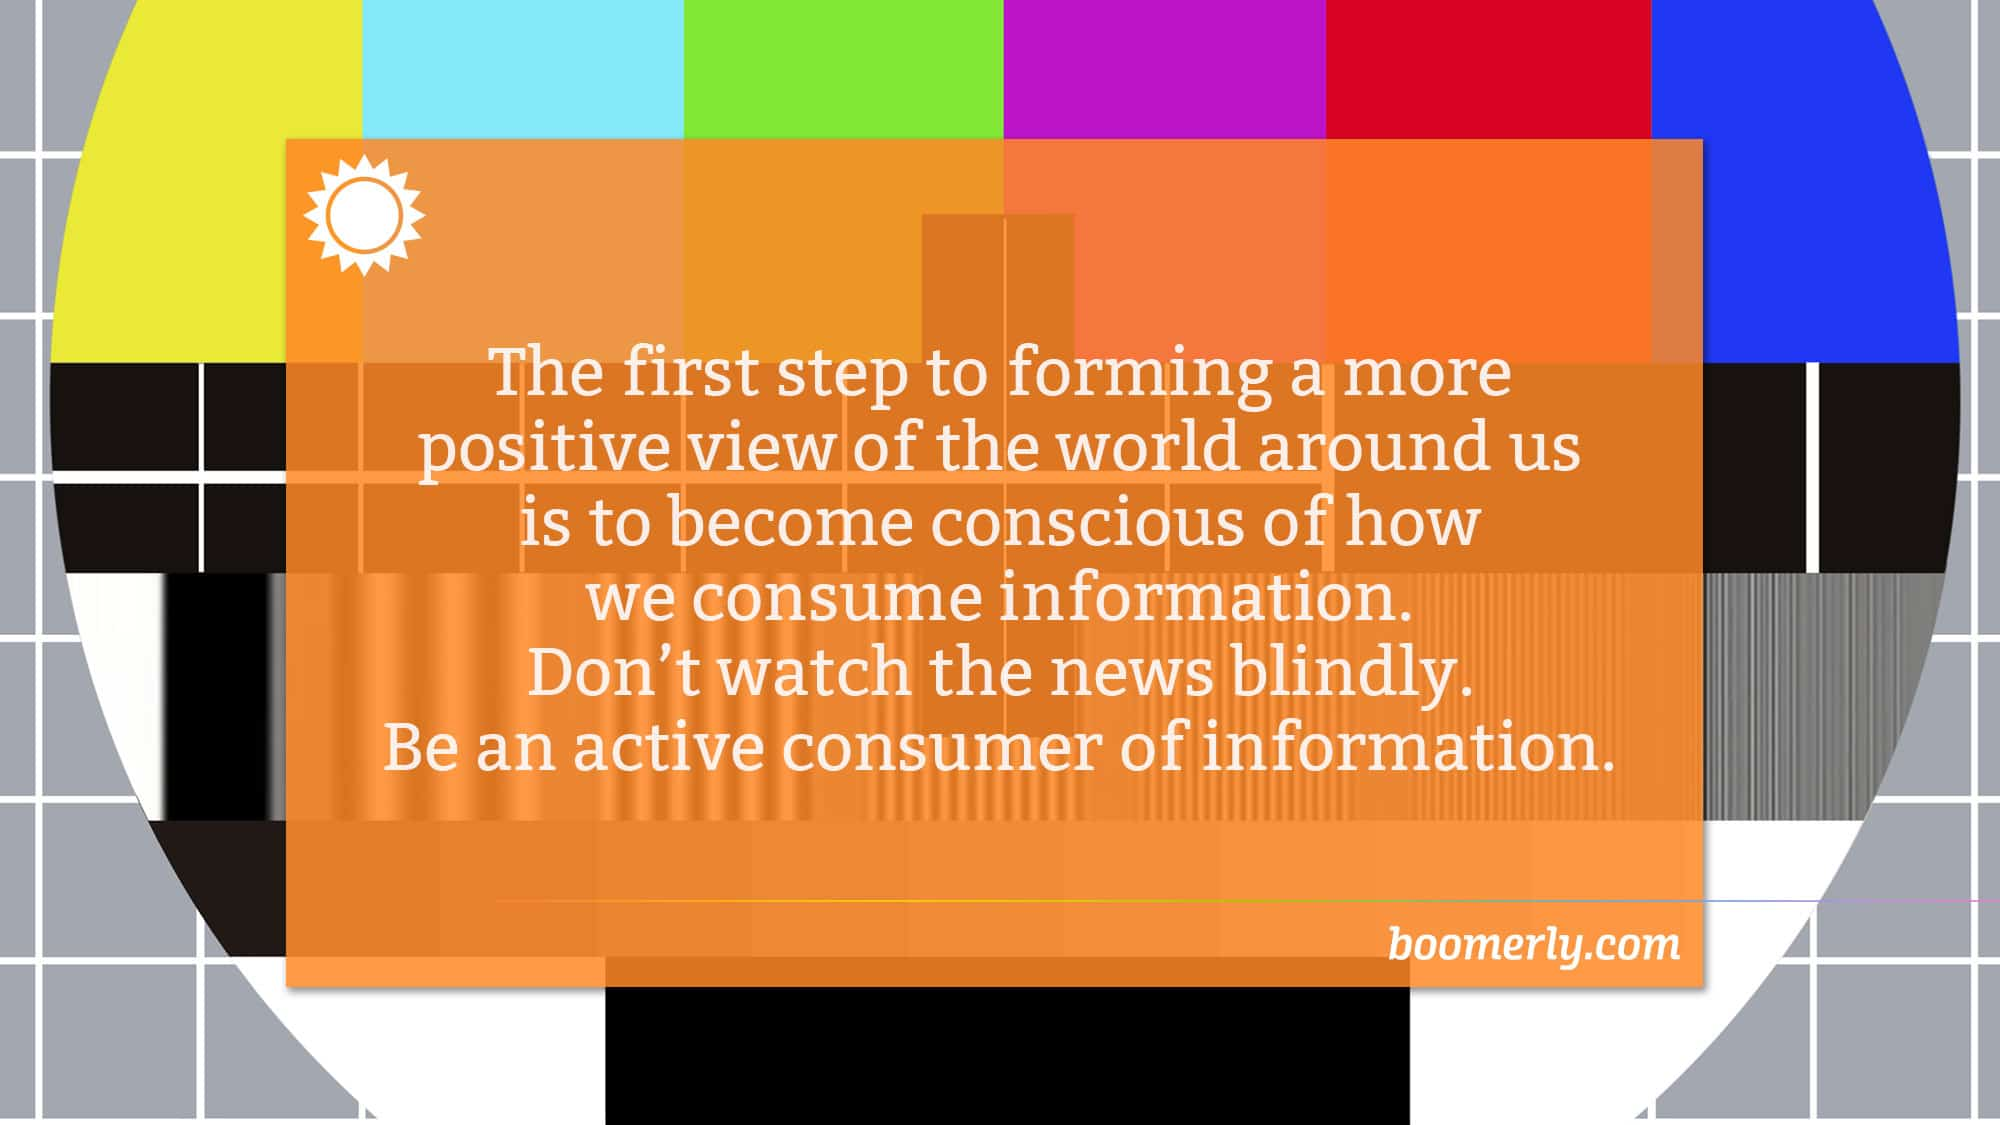 Boomerly.com - The first step to forming a more positive view of the world around us is to become conscious of how we consume information. Don't watch the news blindly. Be an active consumer of information.